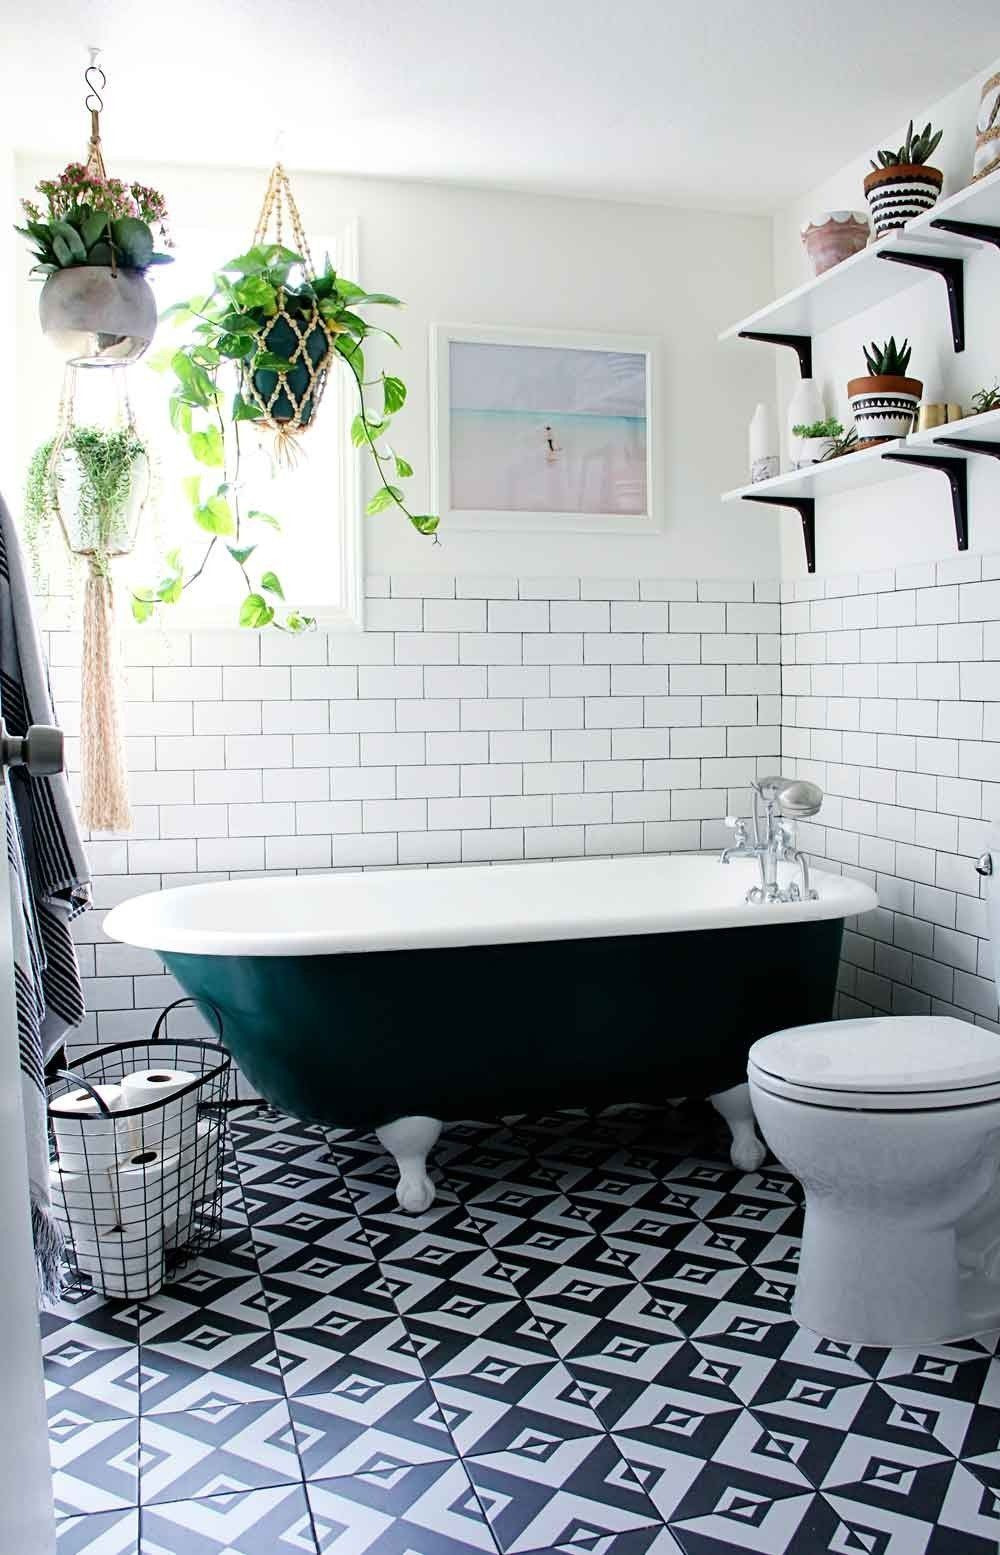 15 Beautiful Black and White Rooms | Visible spectrum, Bright ...